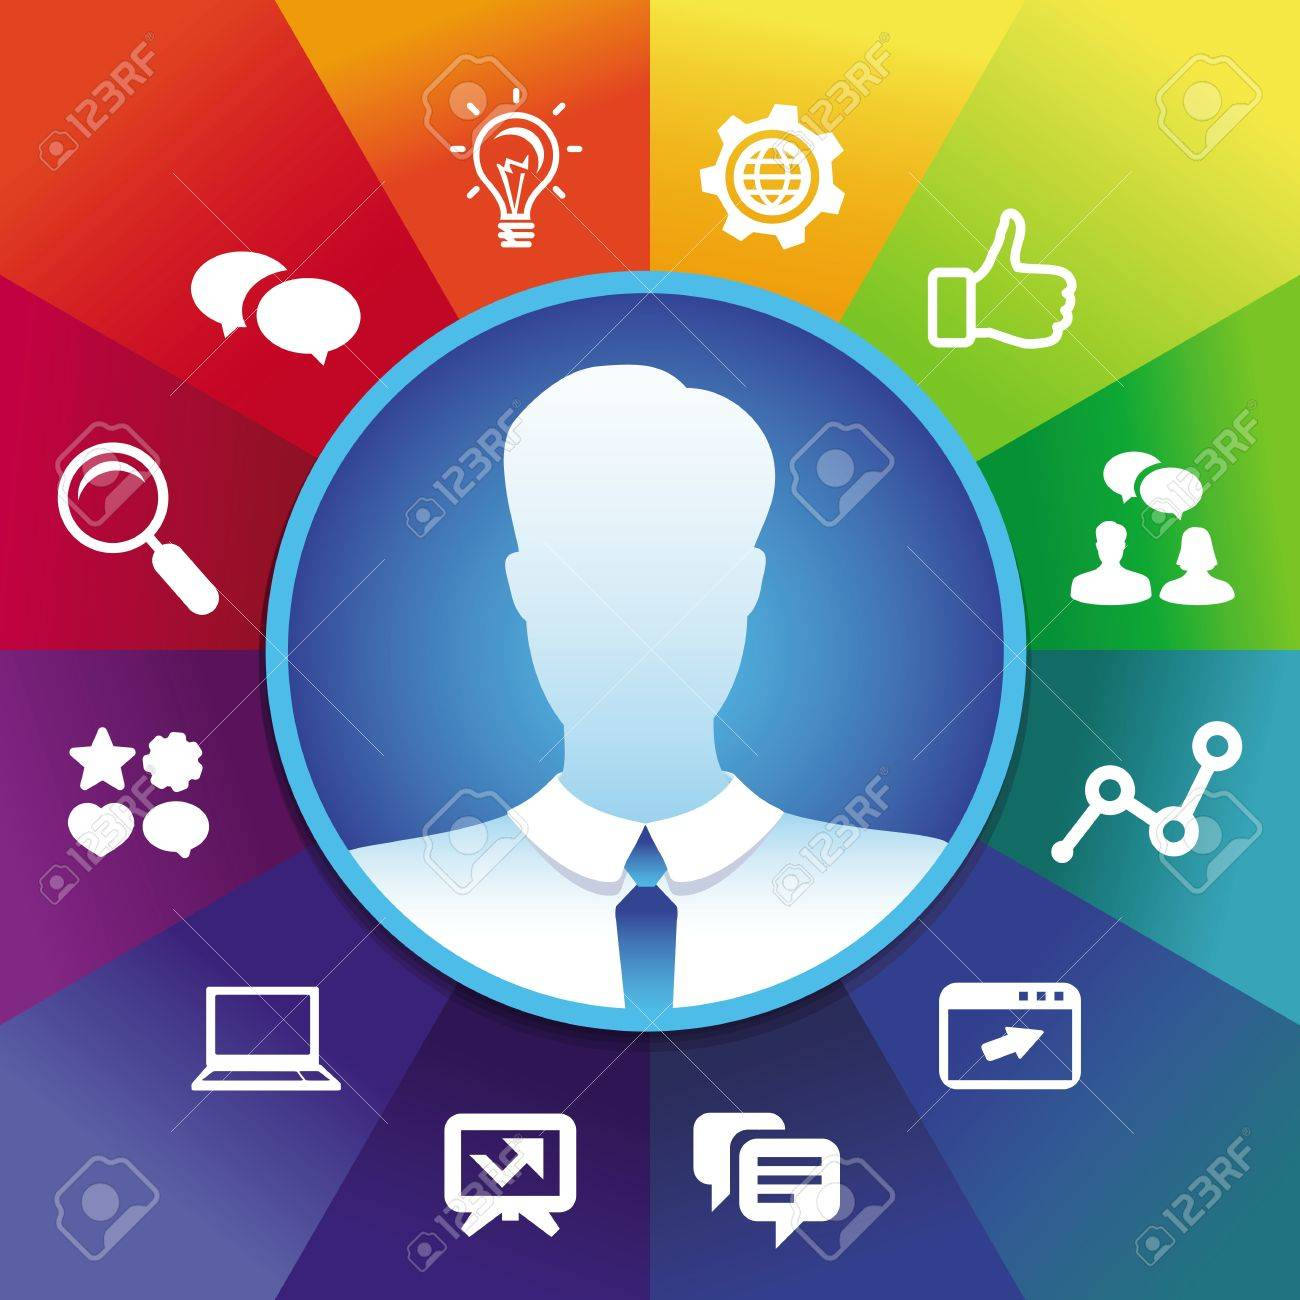 businessman avatar in circle frame and social media icons - internet marketing concept Stock Vector - 19626717